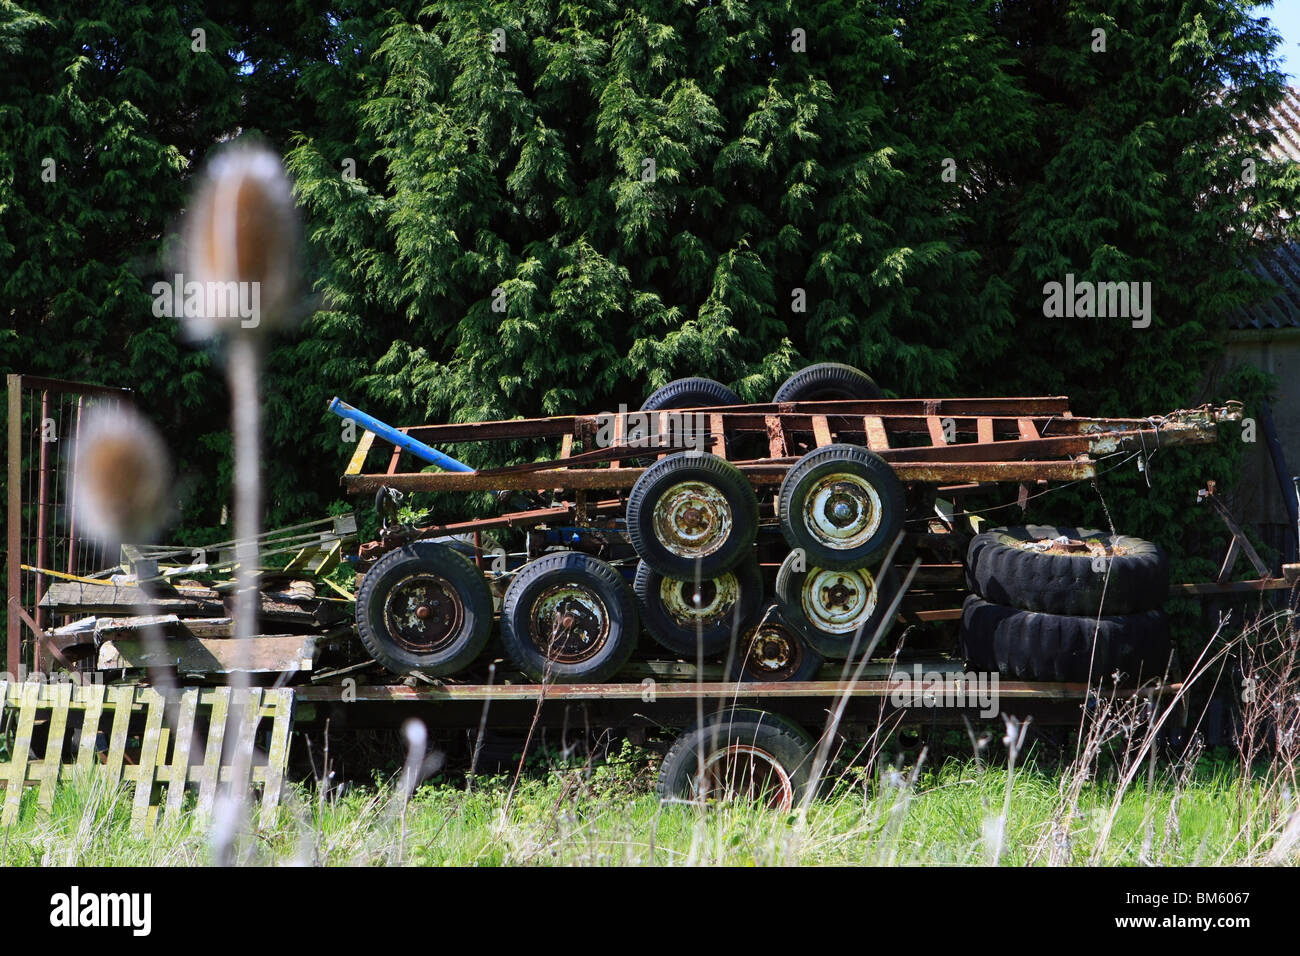 a broken trailer with rusty old trailers stacked on top, in front of conifers in the countryside on a sunny day - Stock Image